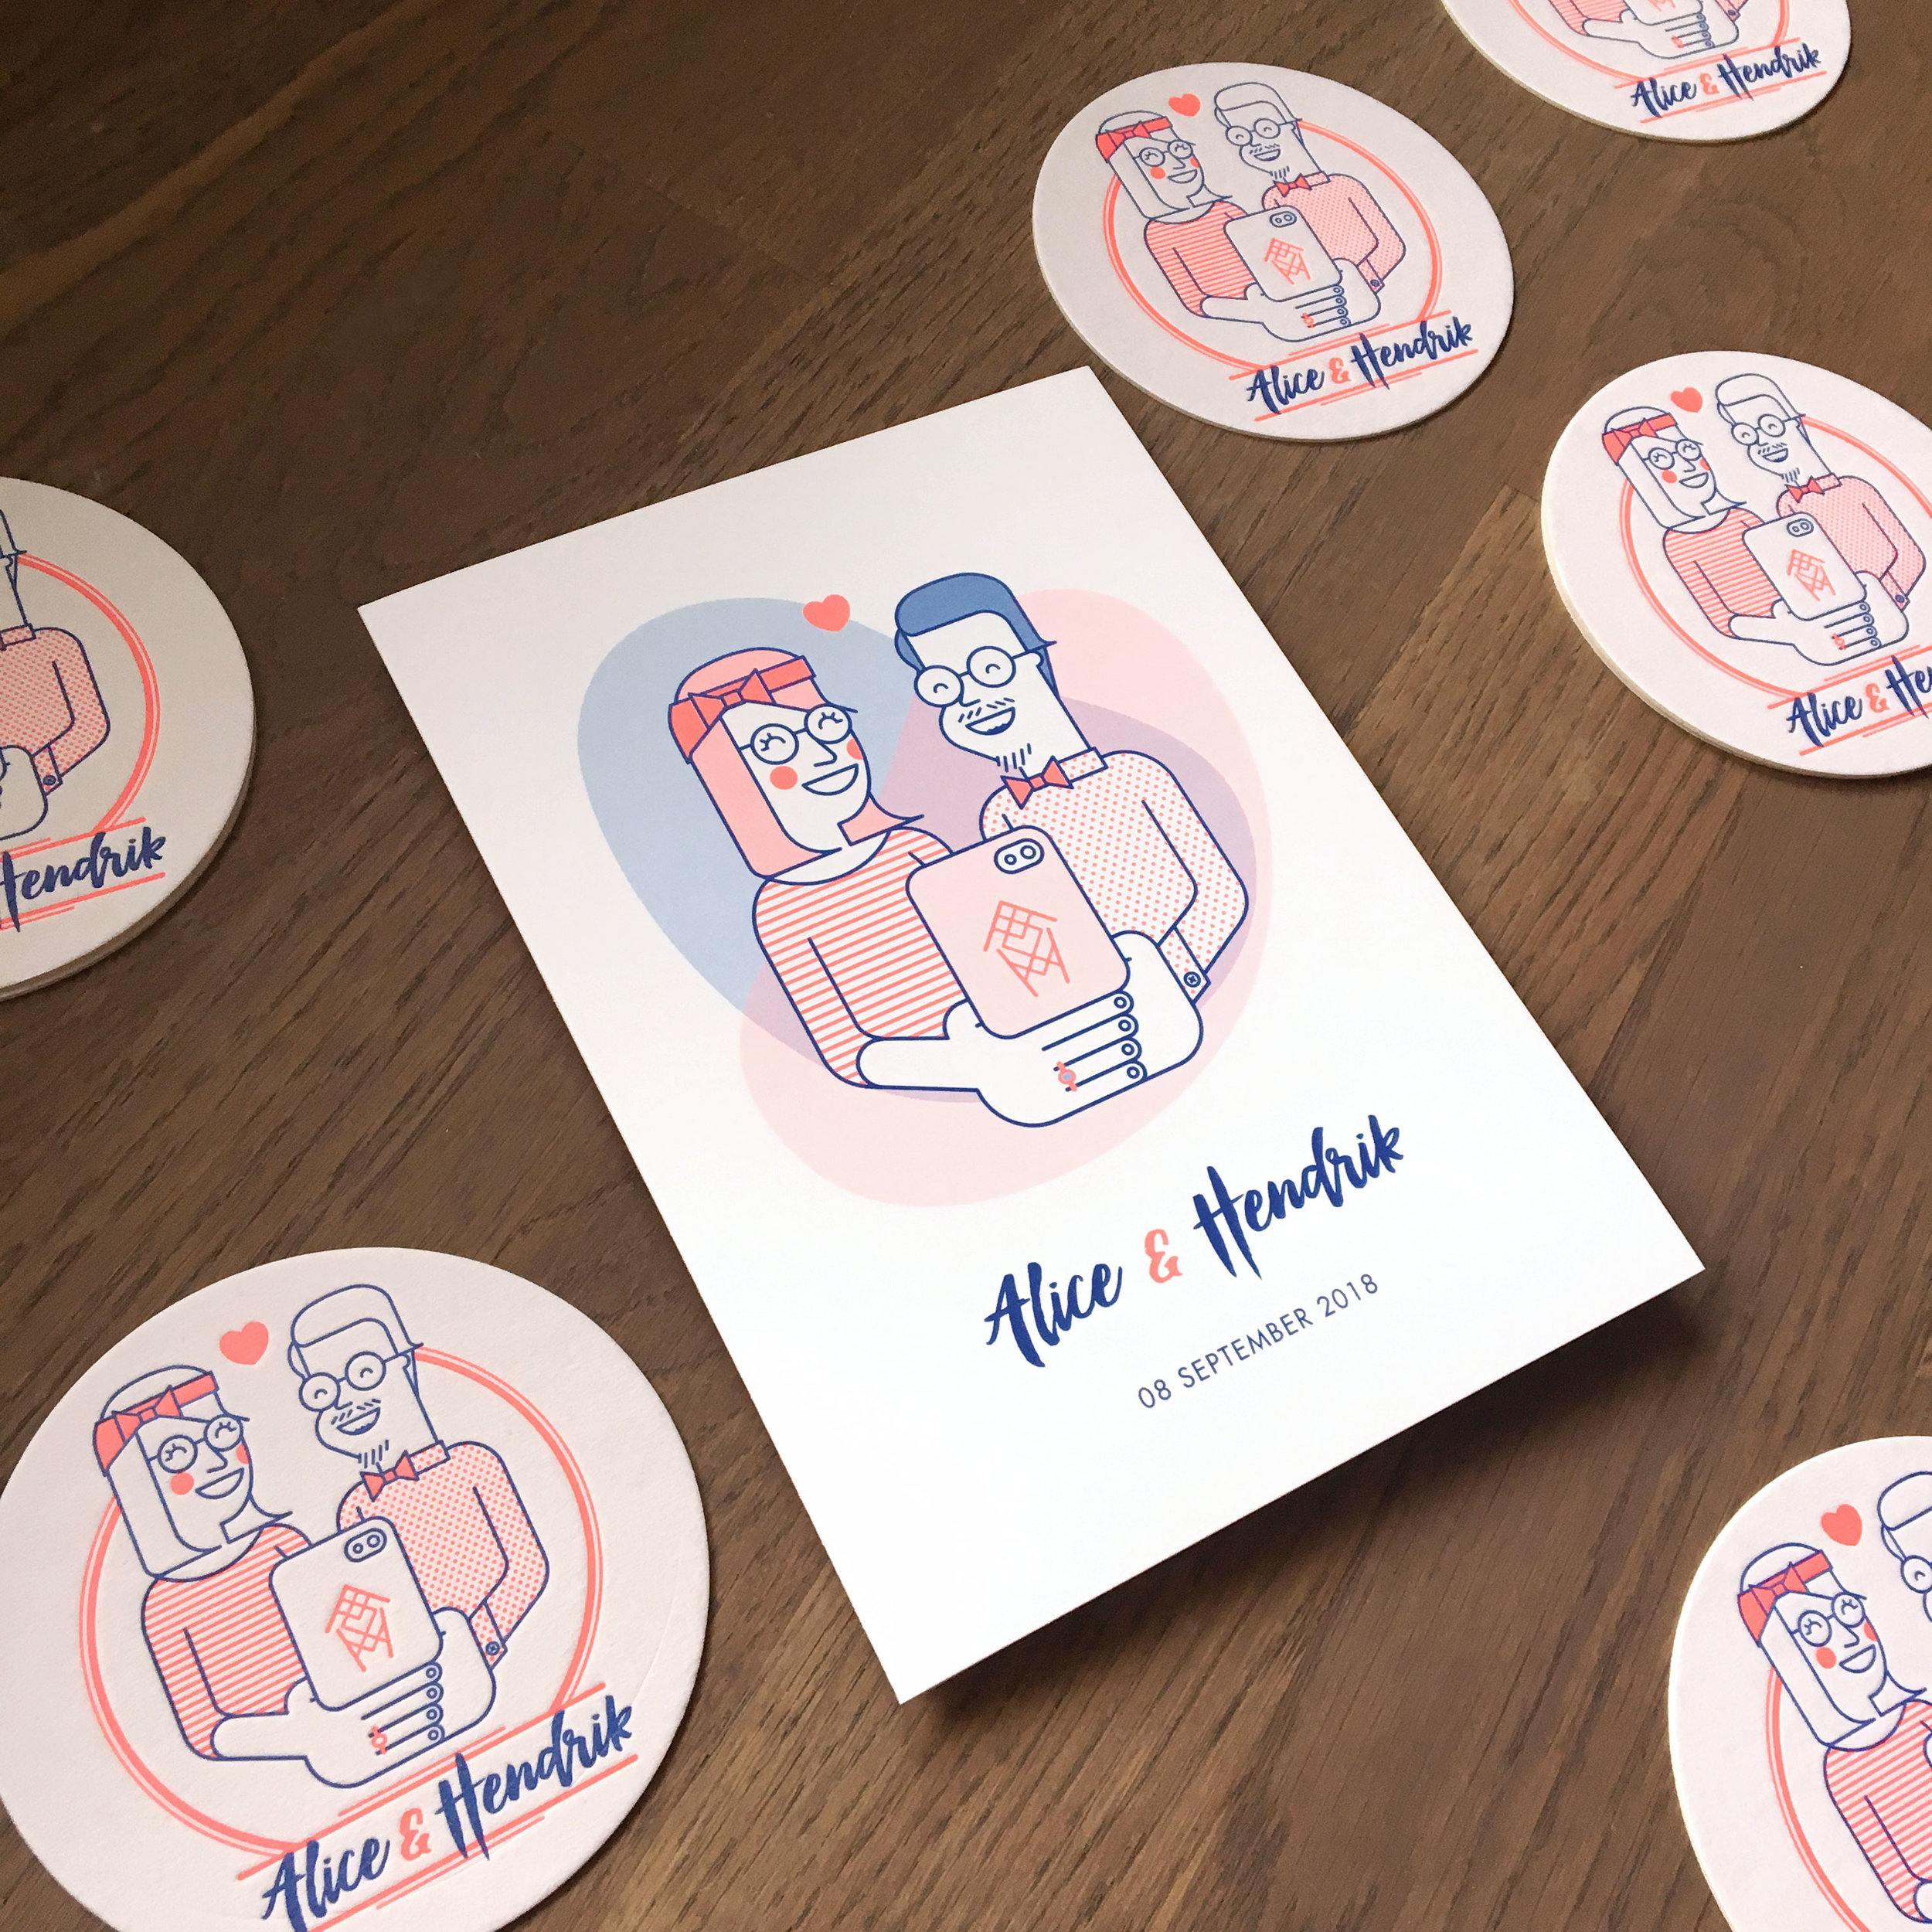 illustration_andre_levy_zhion_vector_flat_outline_alice_hendrik_portrait_wedding_icons_selfie_happyalice_happyhendrik_coasters_letterpress.jpg